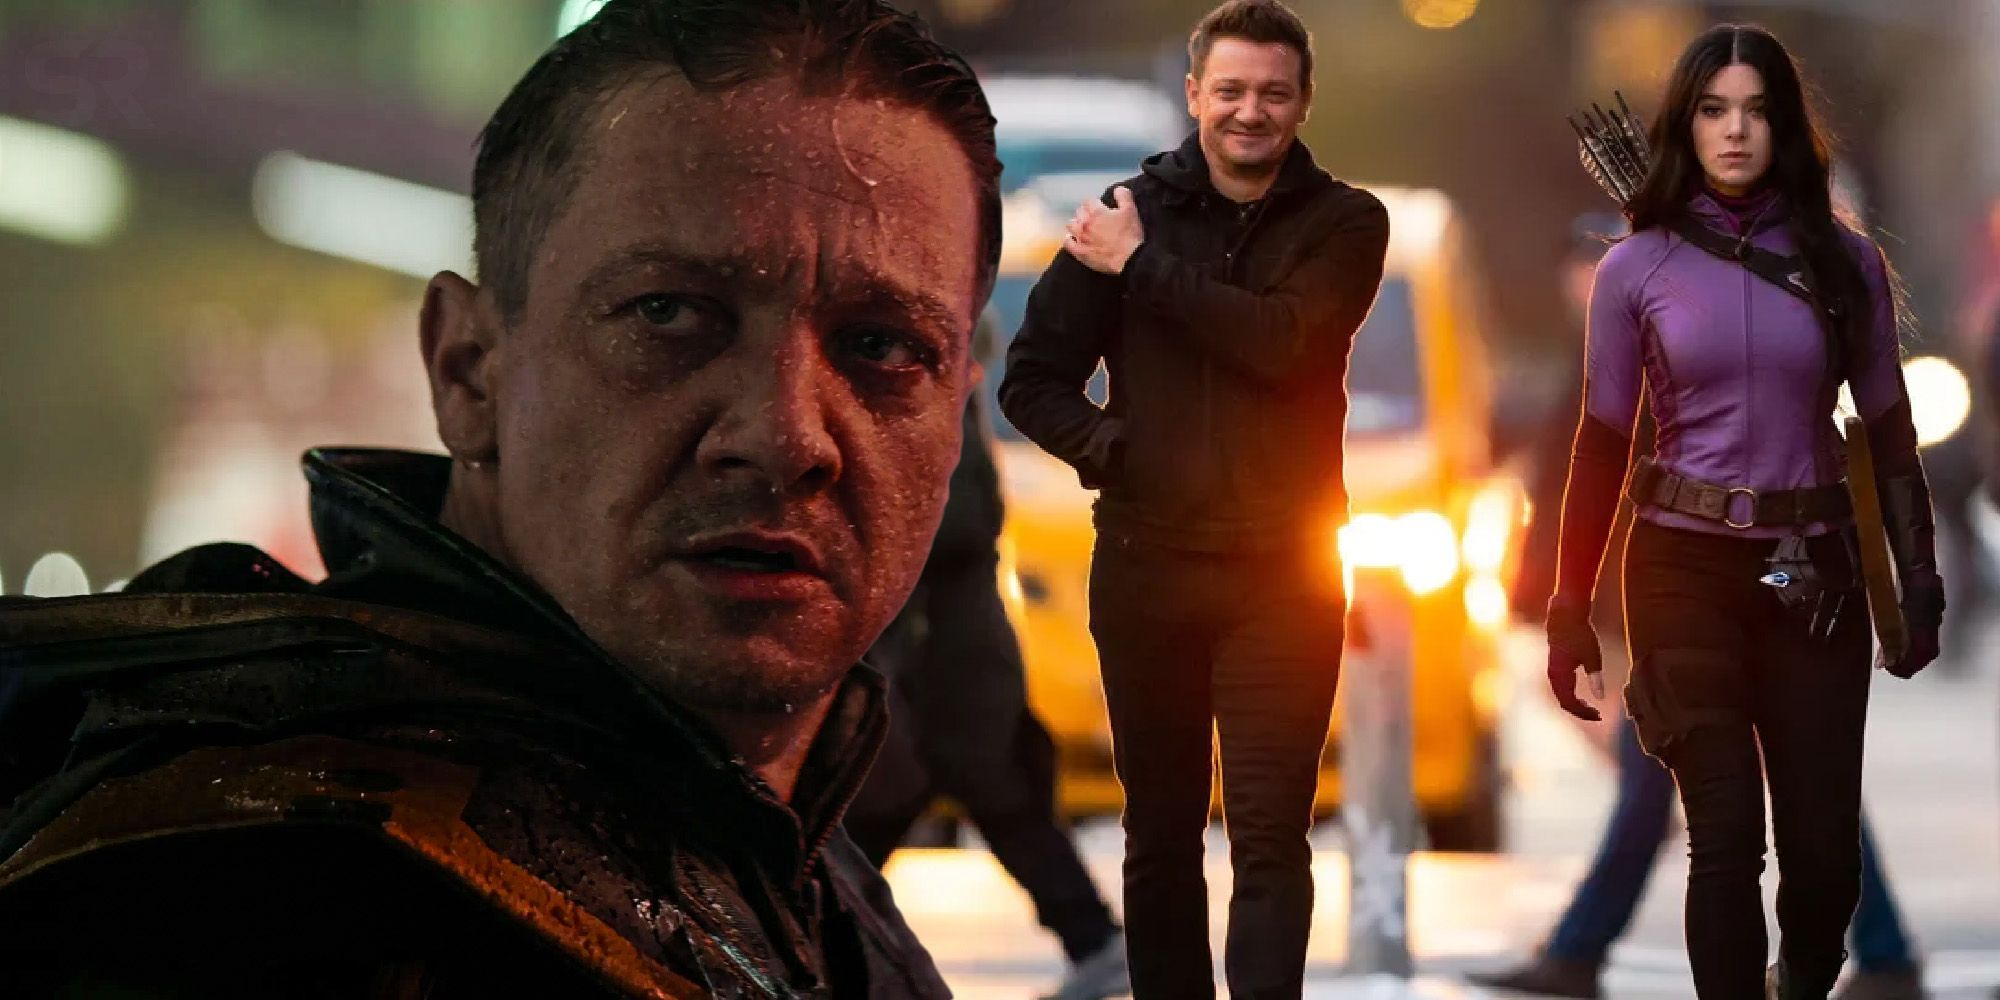 Phase 4 explains why Hawkeye is still a hero after the playoffs